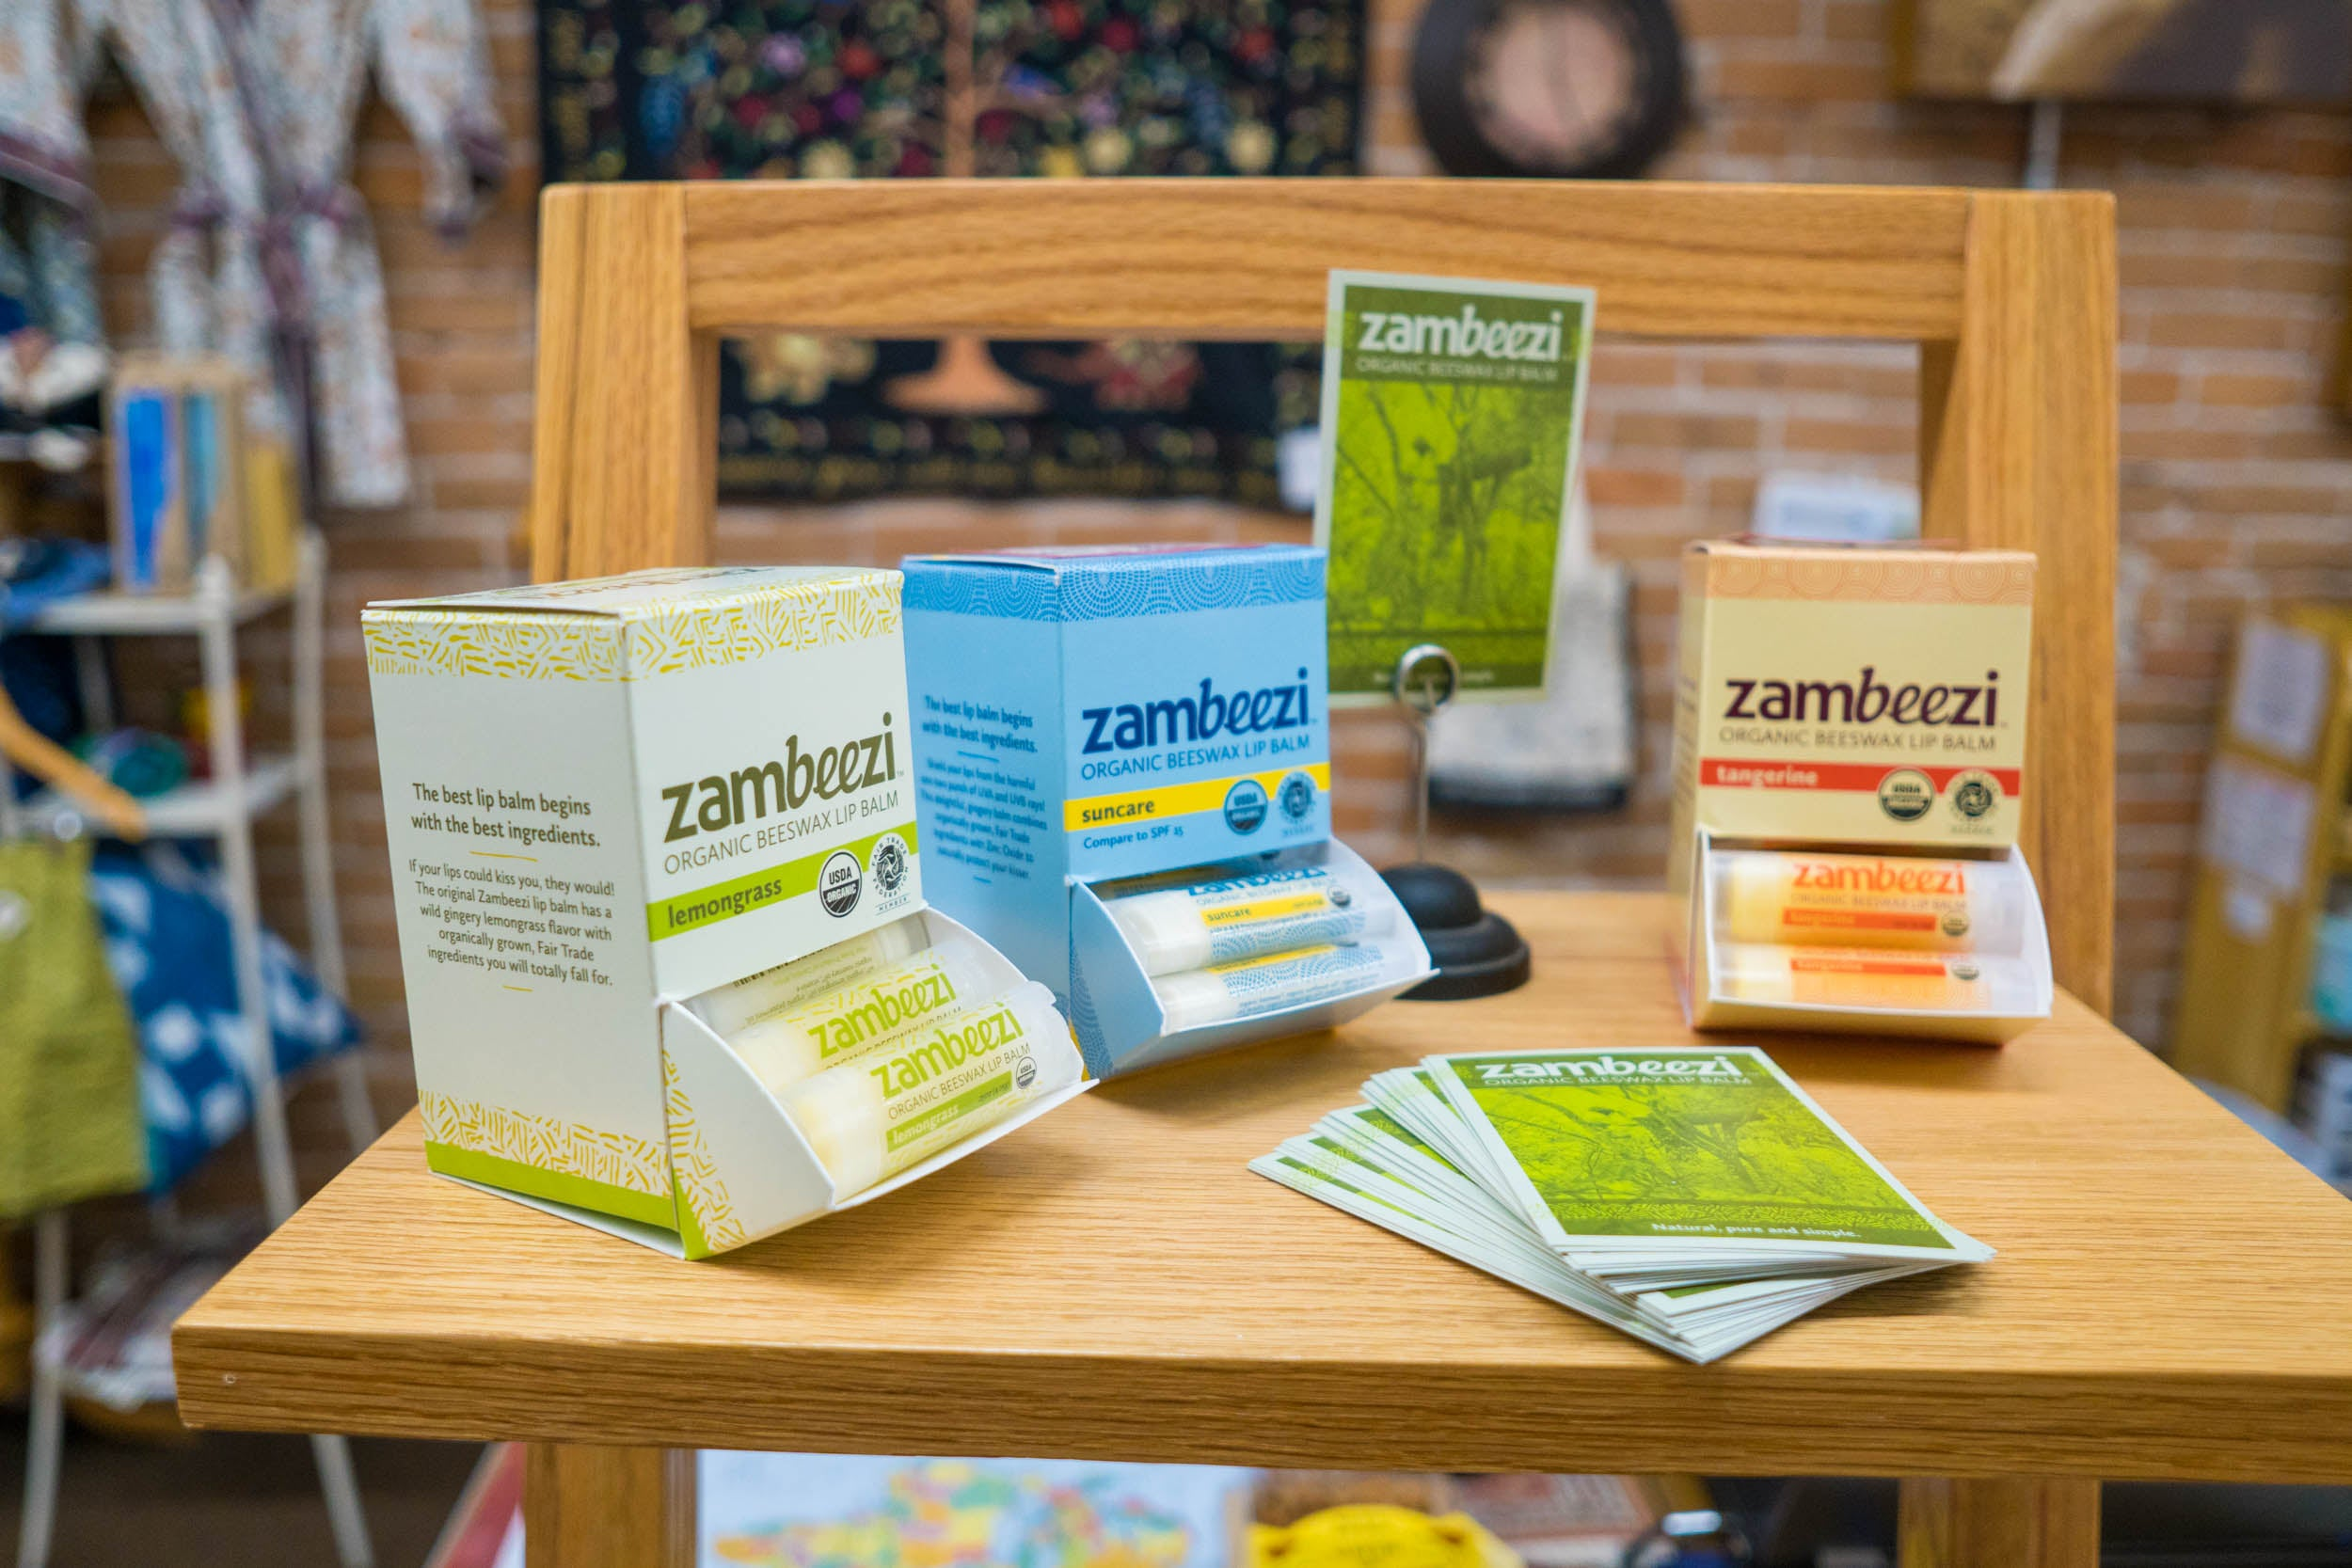 Find the best ethical chapstick at a store near you - Zambeezi Organic, Fair Trade beeswax lip balm